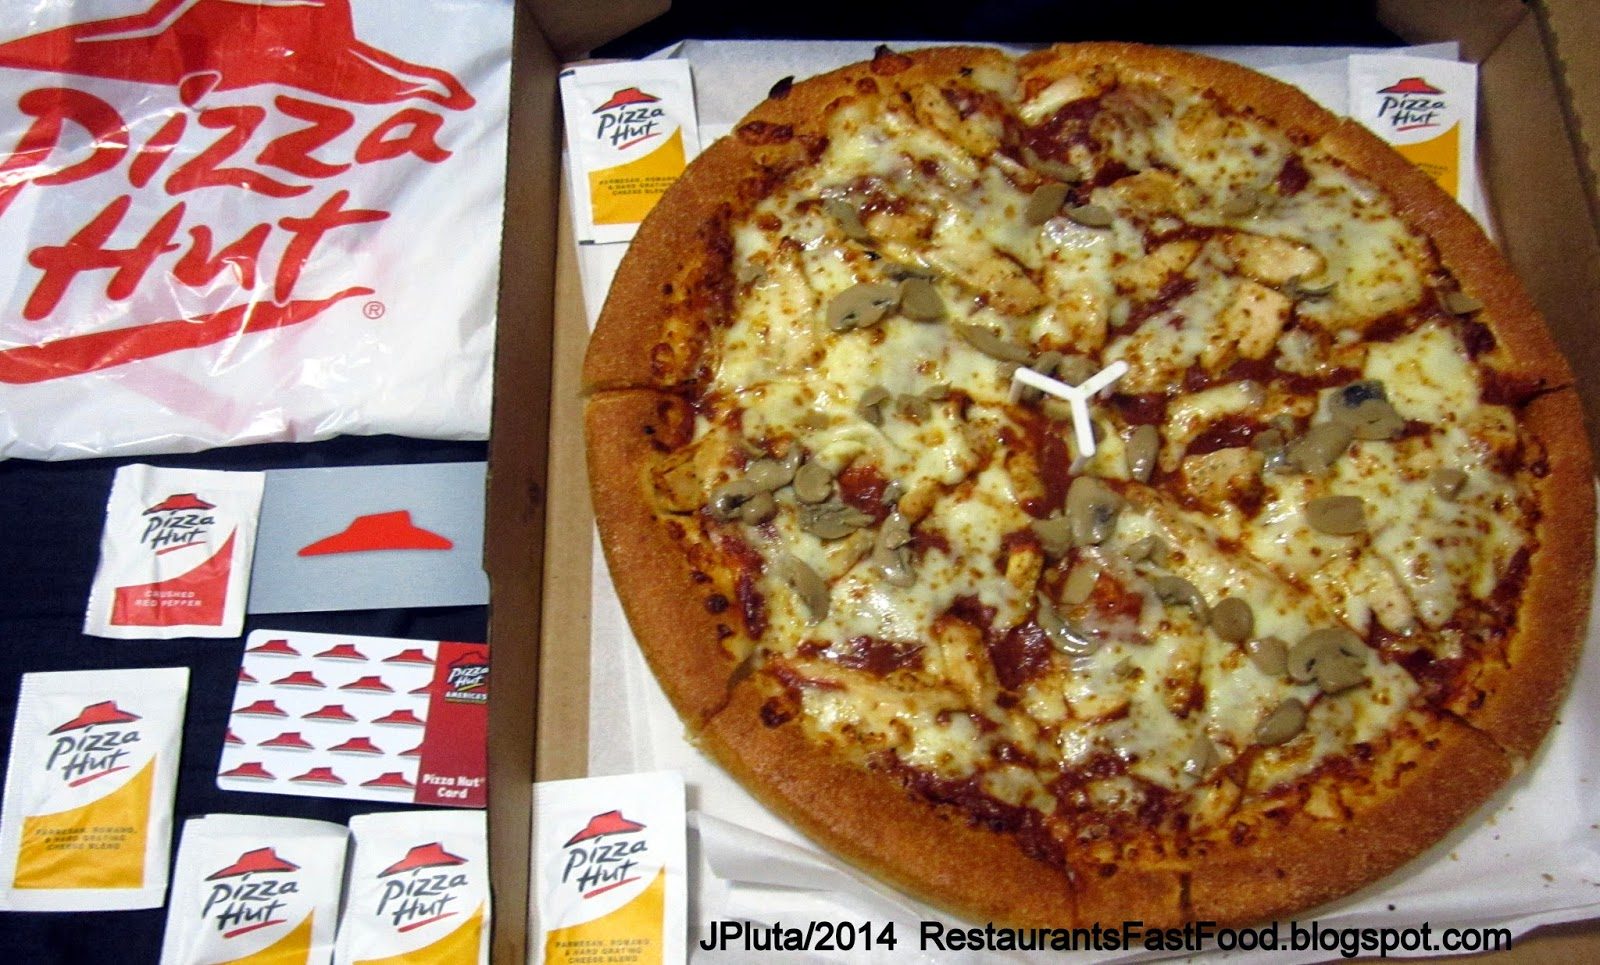 Pizza hut coupons large pizza and wings